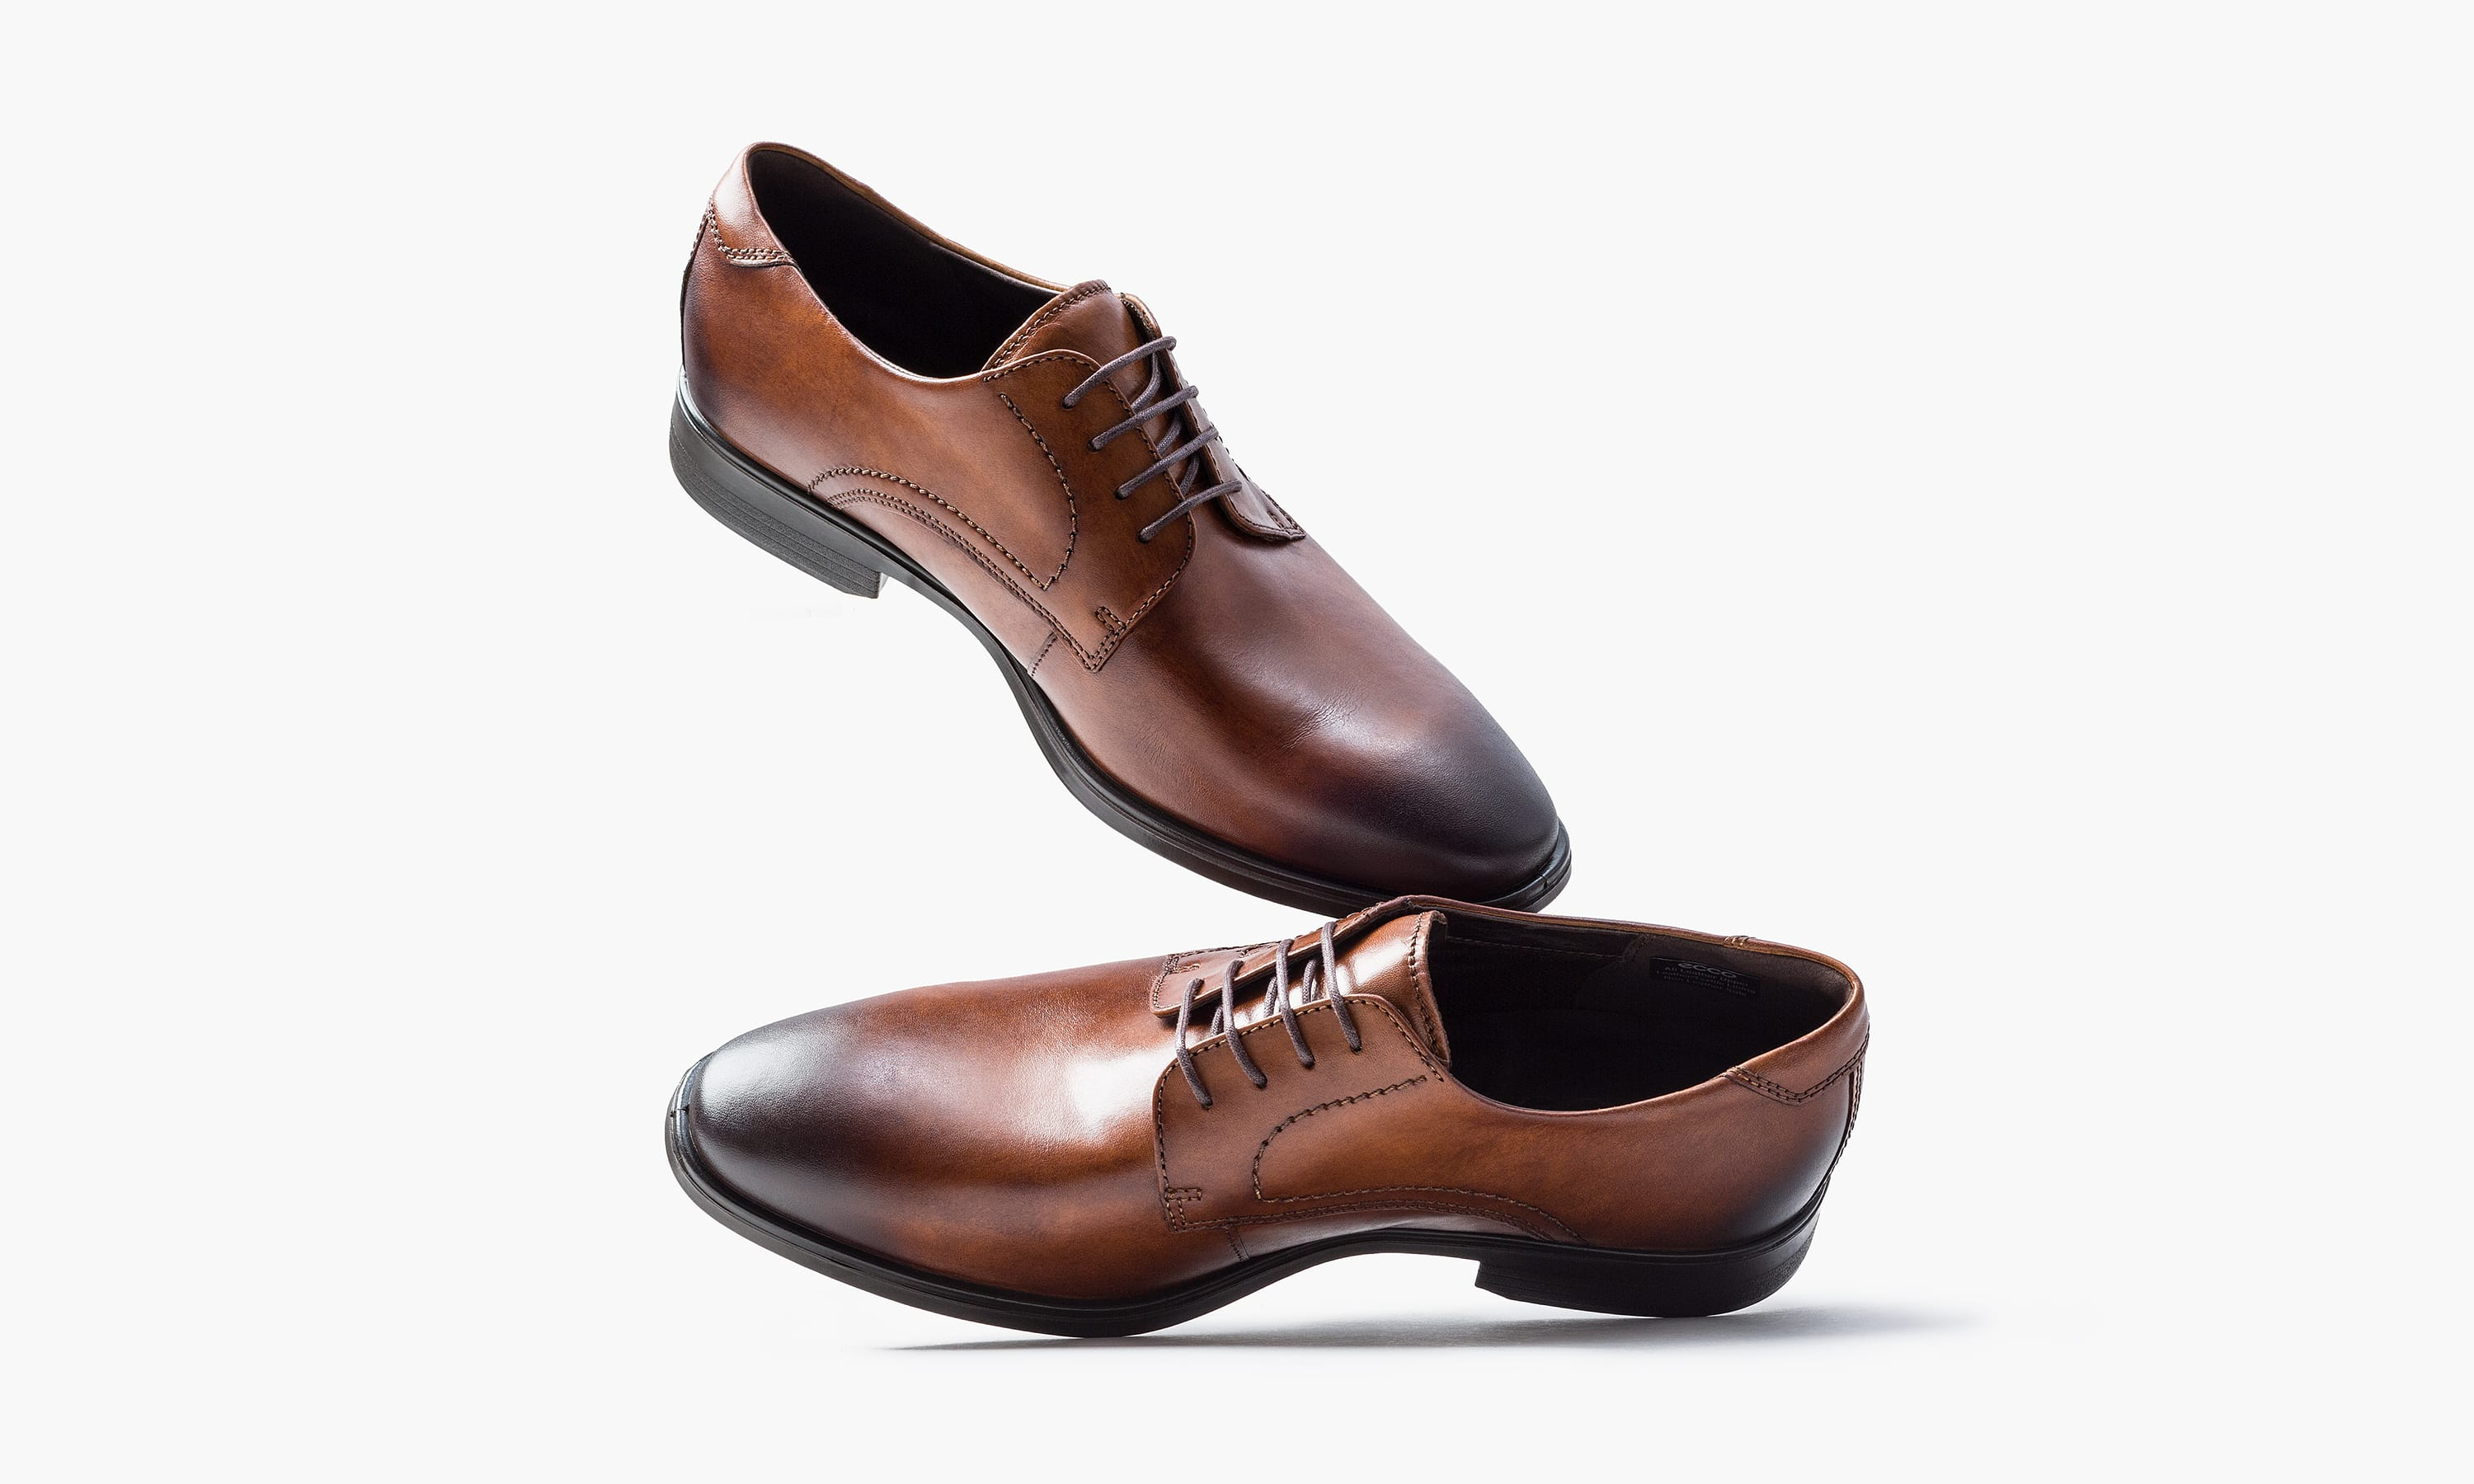 Paul Carroll Shoes | Taran Dunn